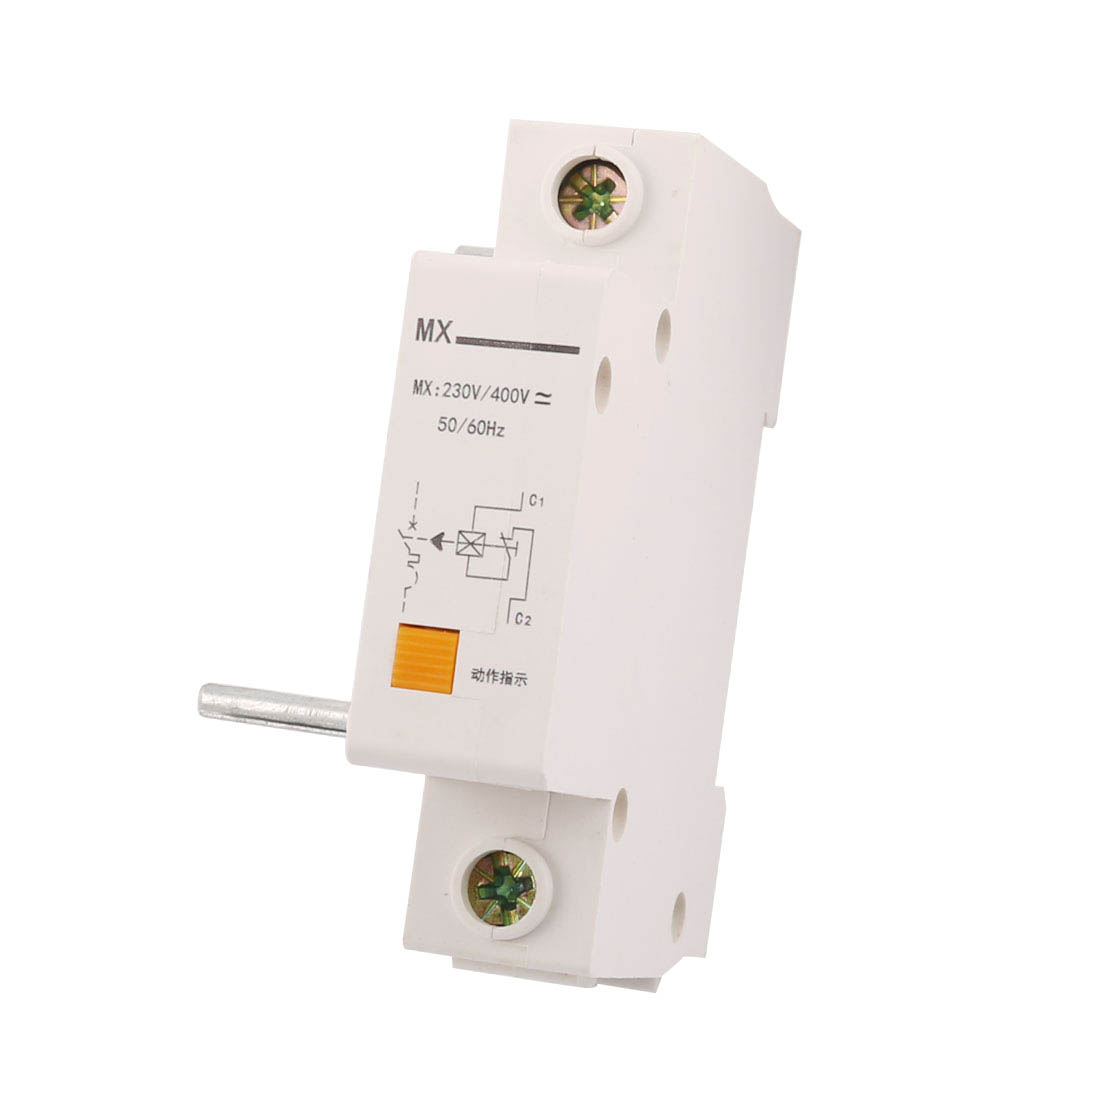 AC 230V MX Fire Off Shunt Tripping Device Auxiliary Switch for Circuit Breaker